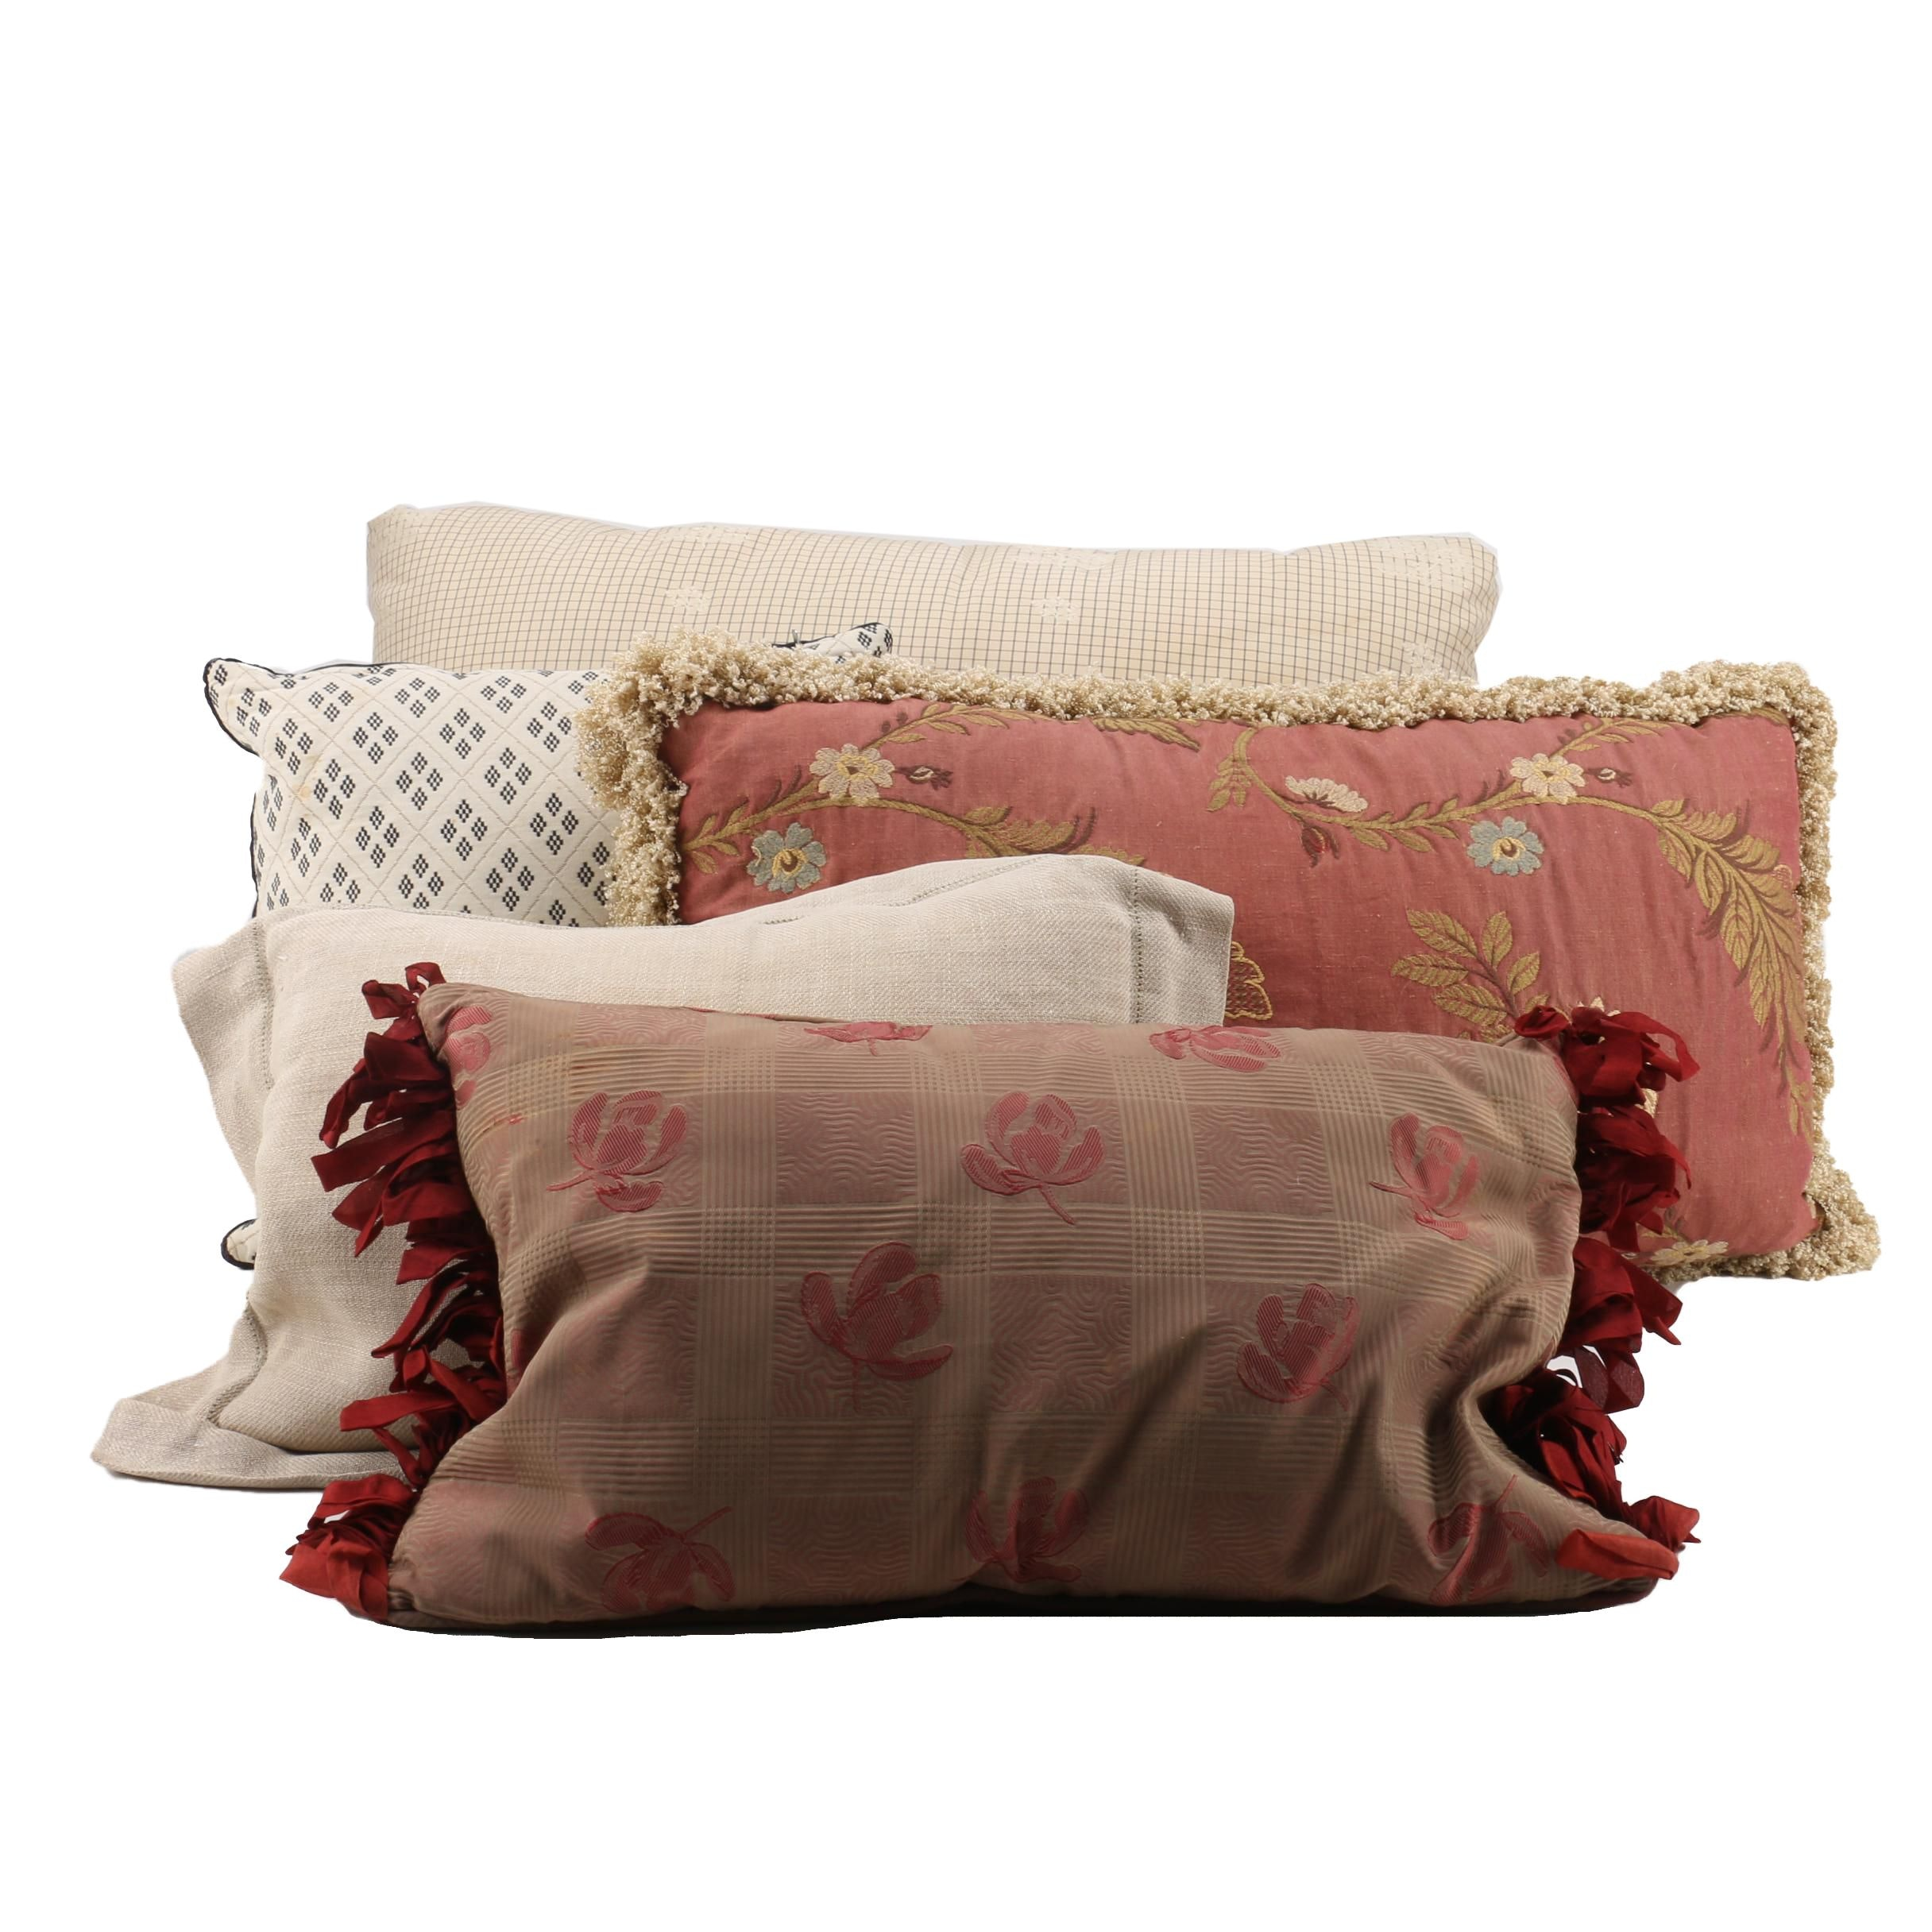 Assorted Red and Cream Decorative Throw Pillows